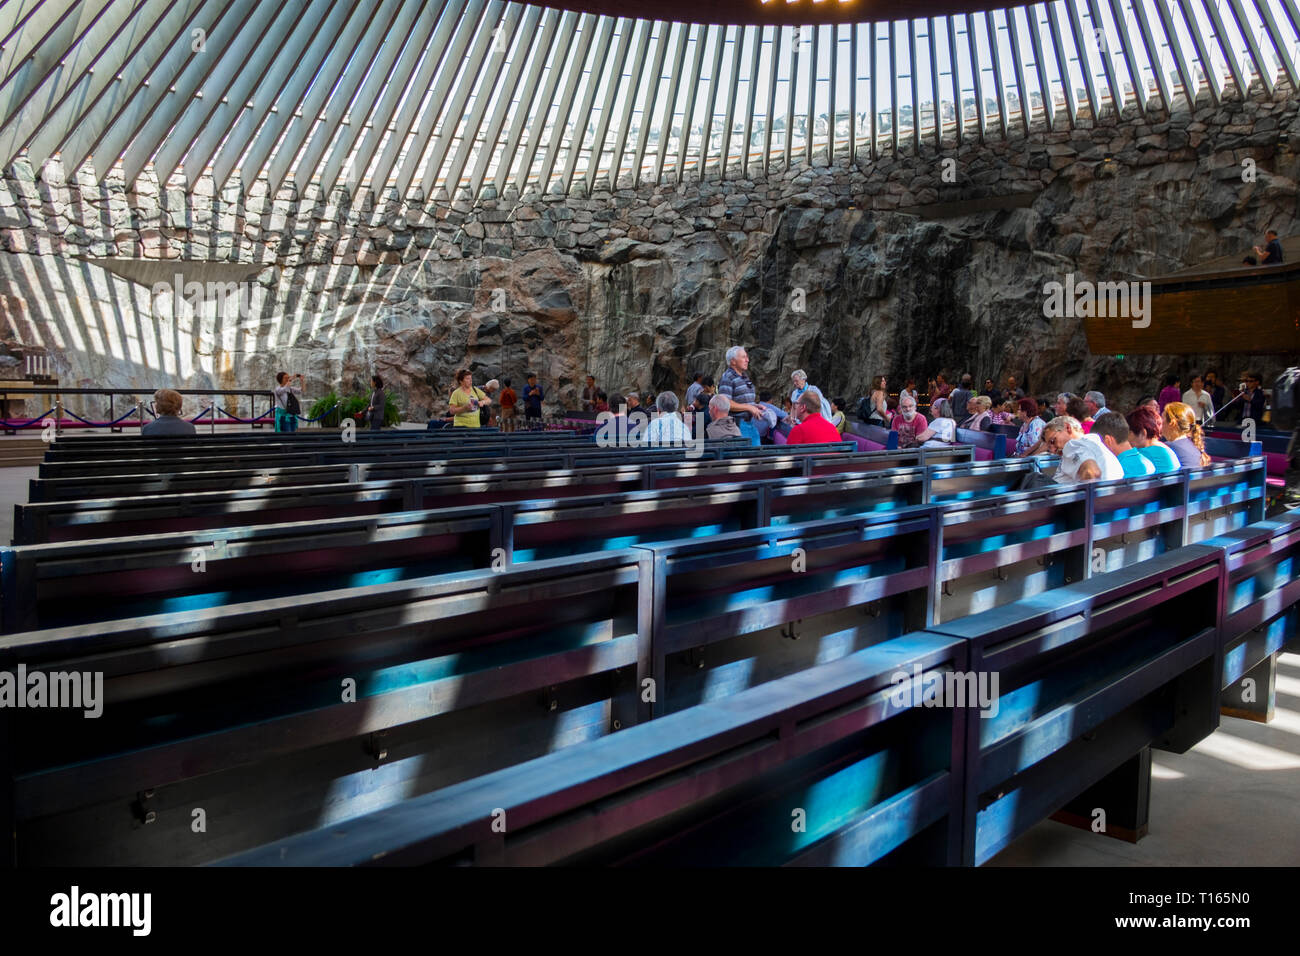 Interior view of the partially underground, rock-carved Temppeliaukio church in Helsinki, Finland. The Lutheran church has a natural appearance. Stock Photo